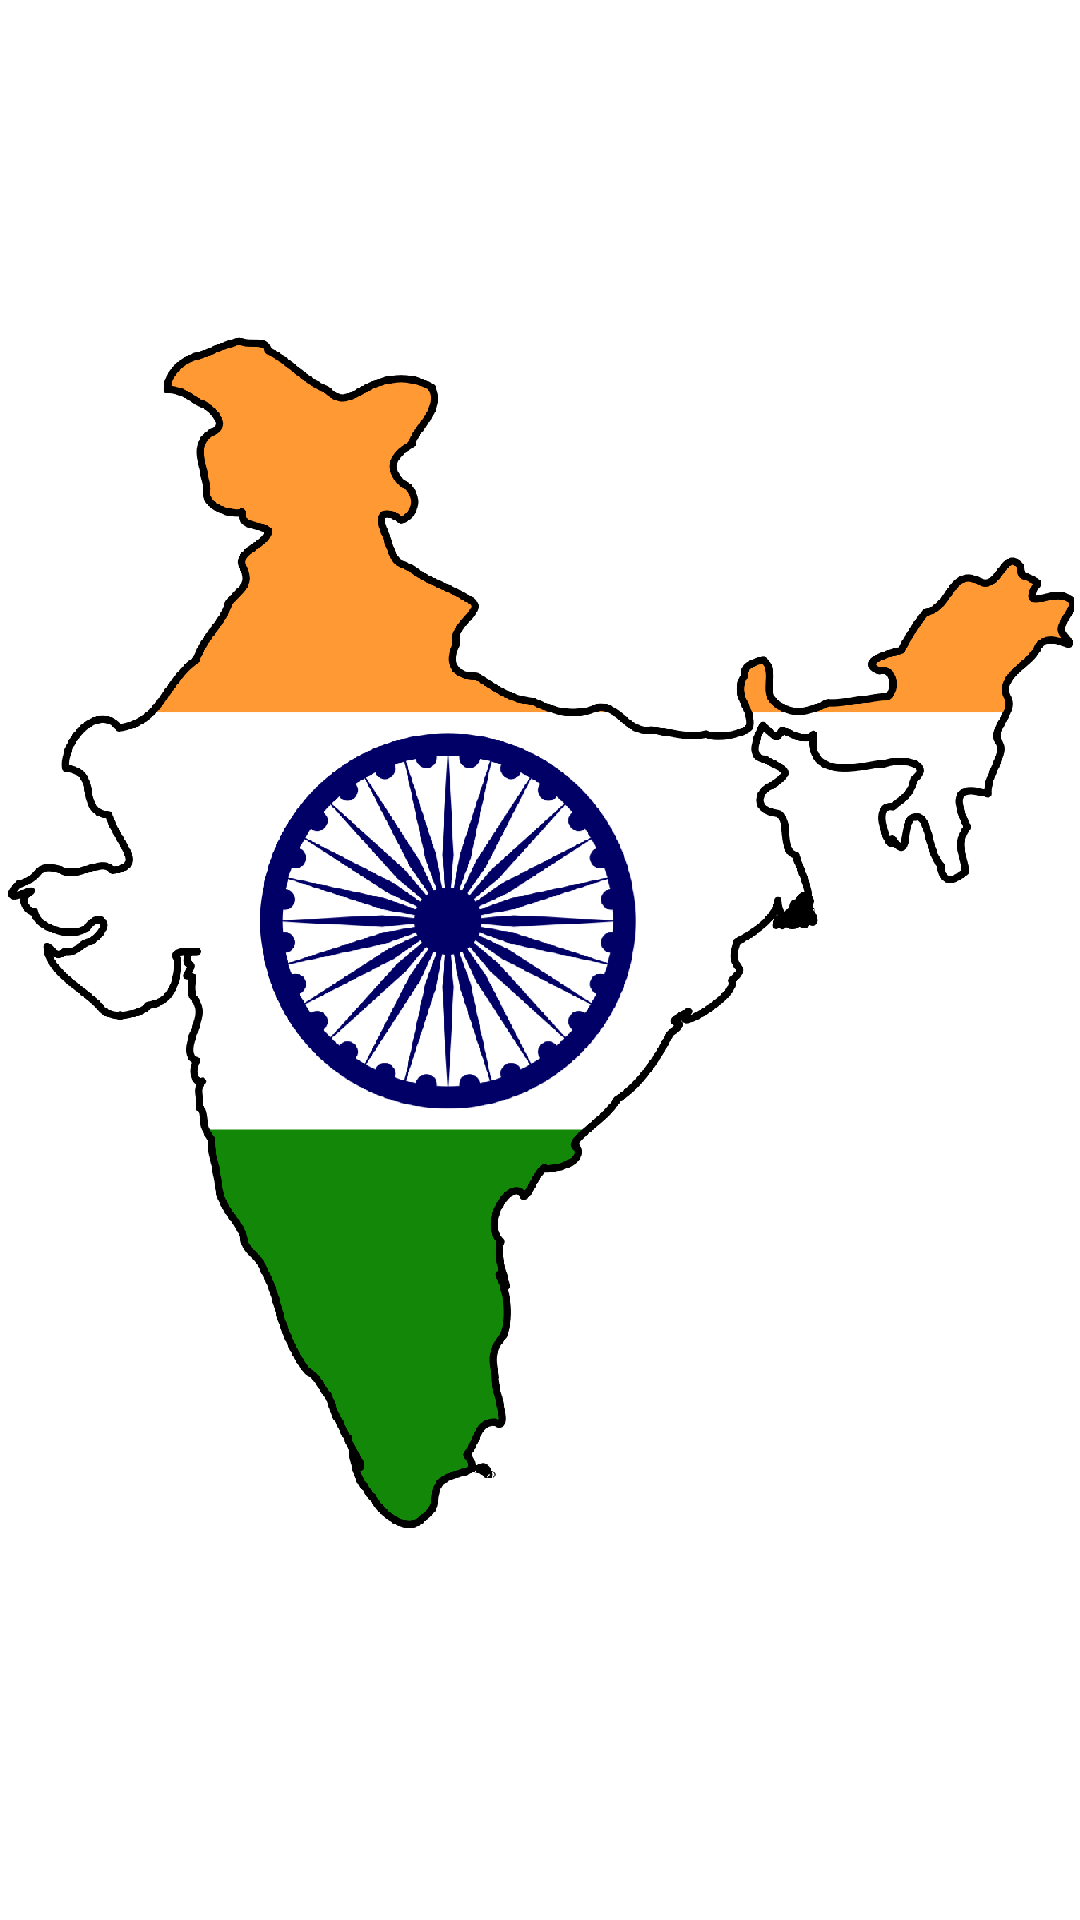 Pin India-flag-map on Pinterest